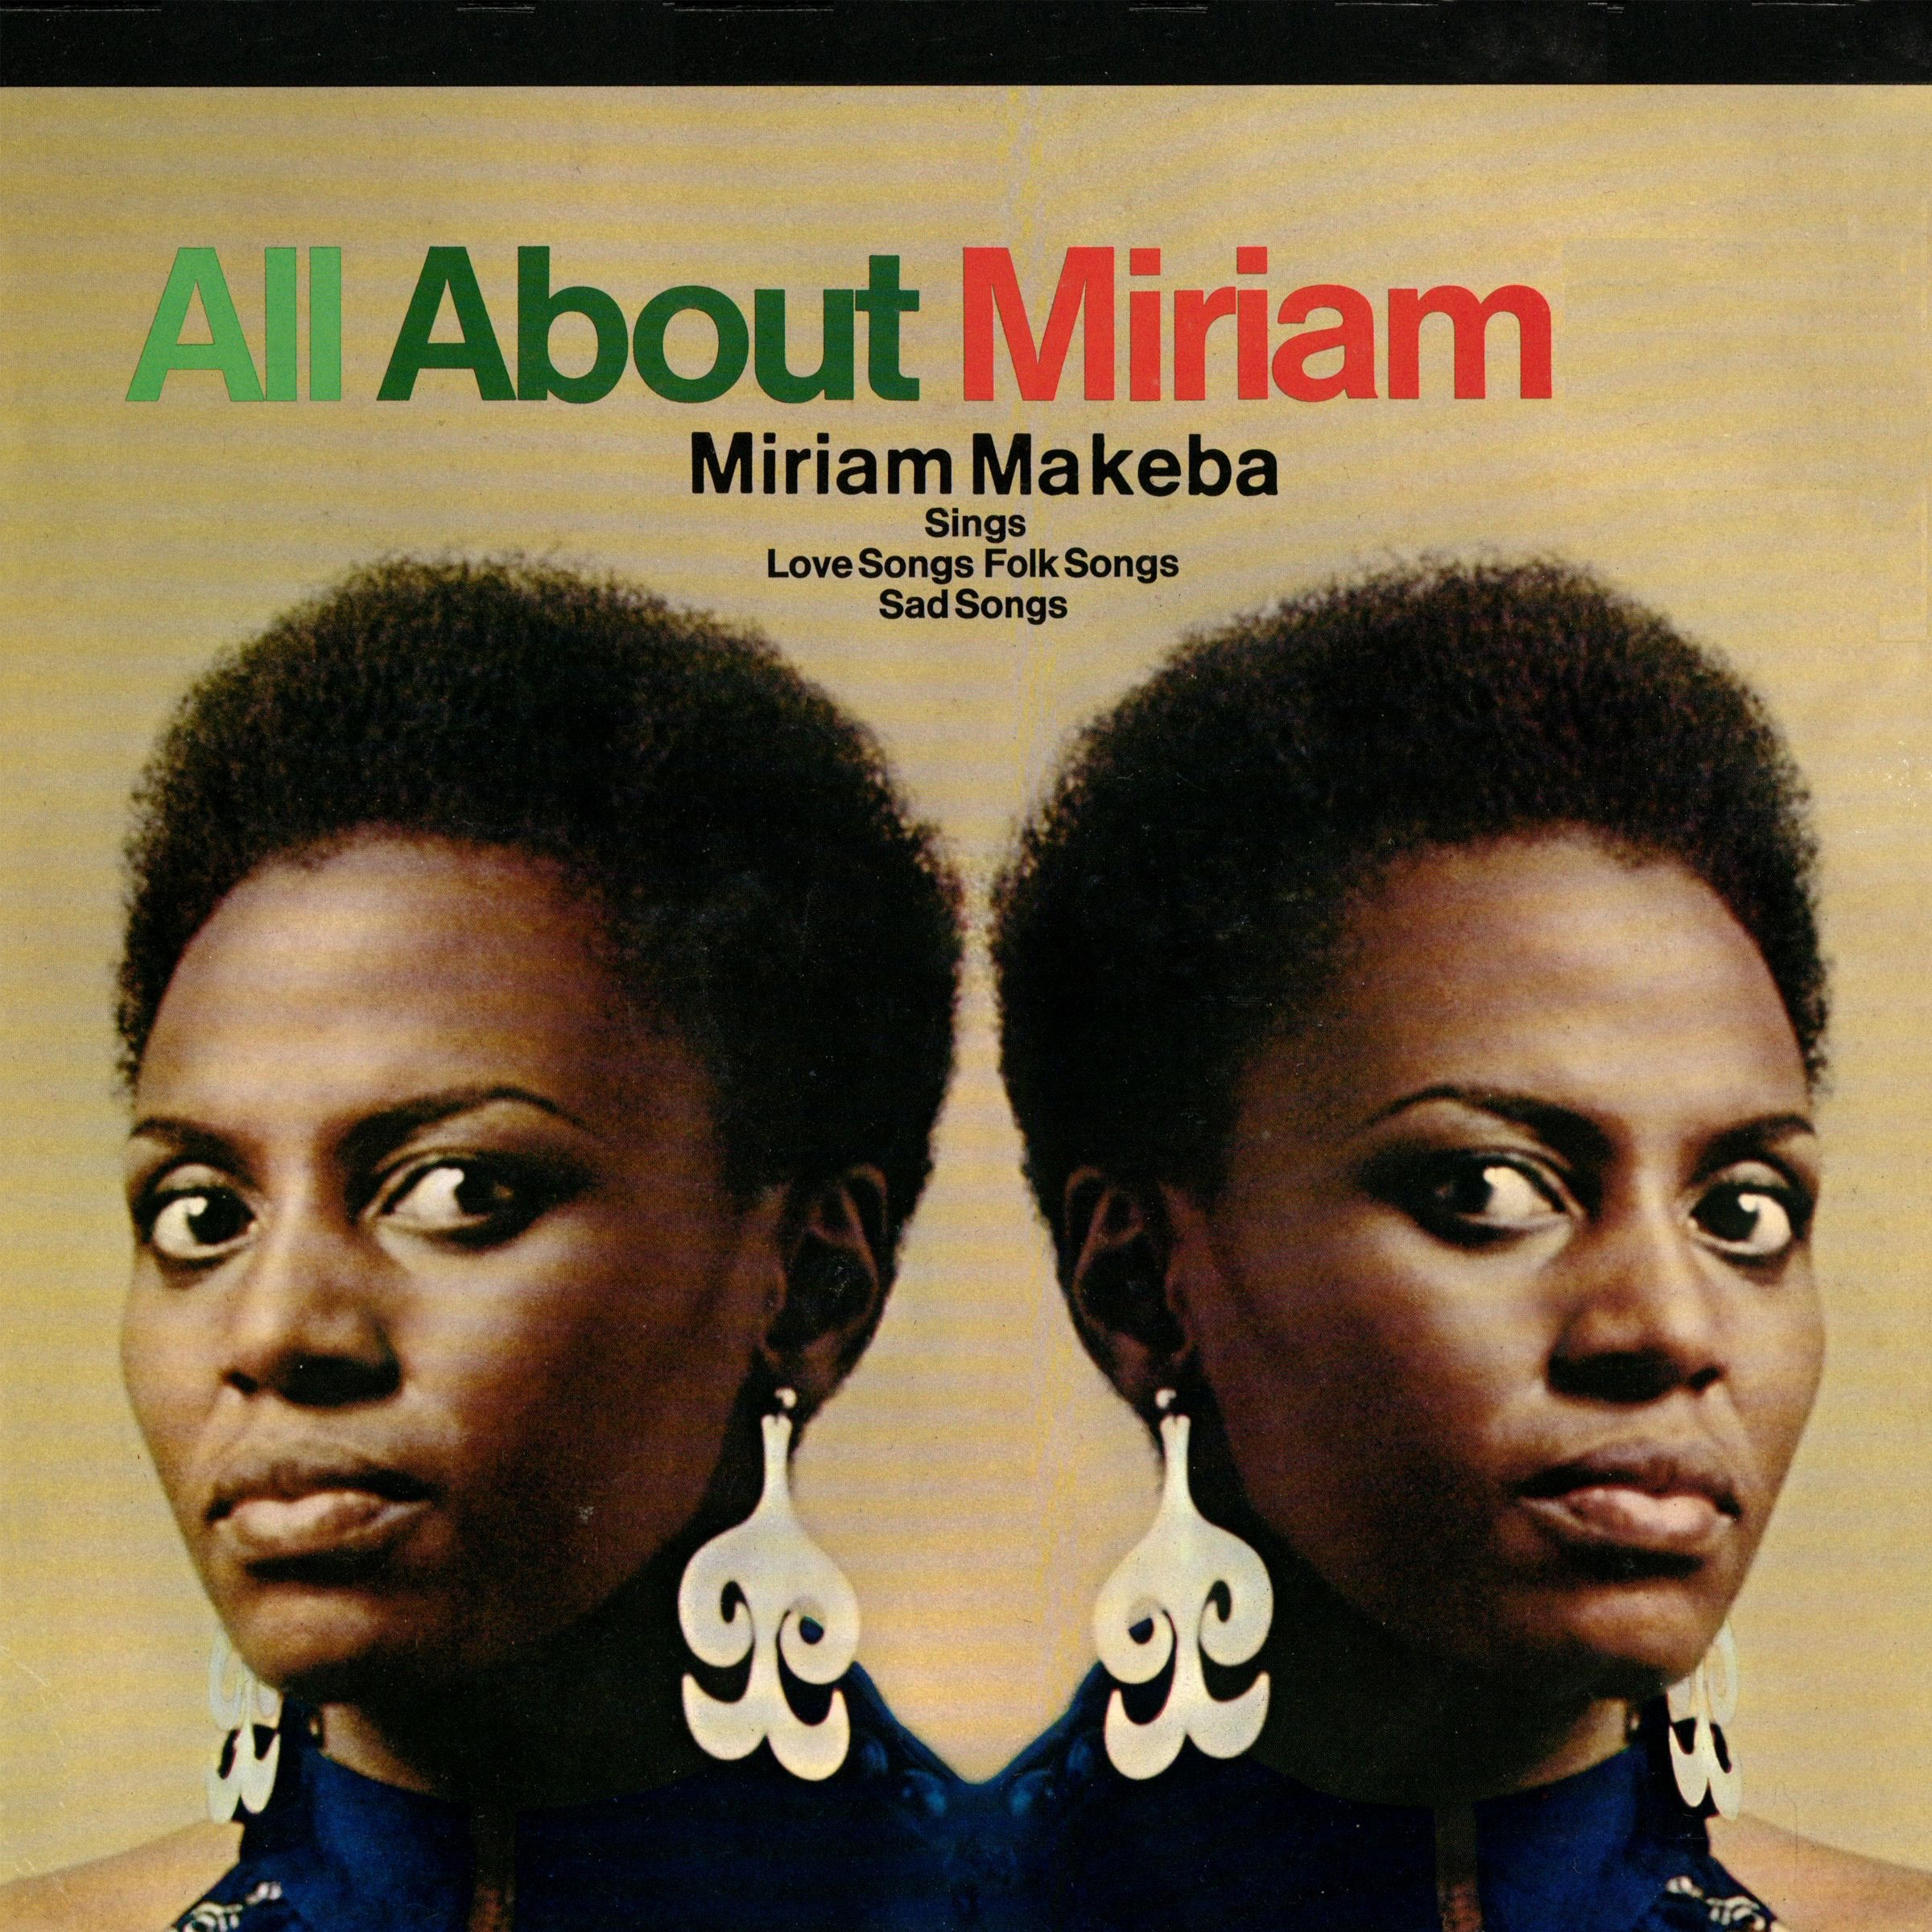 All About Miriam